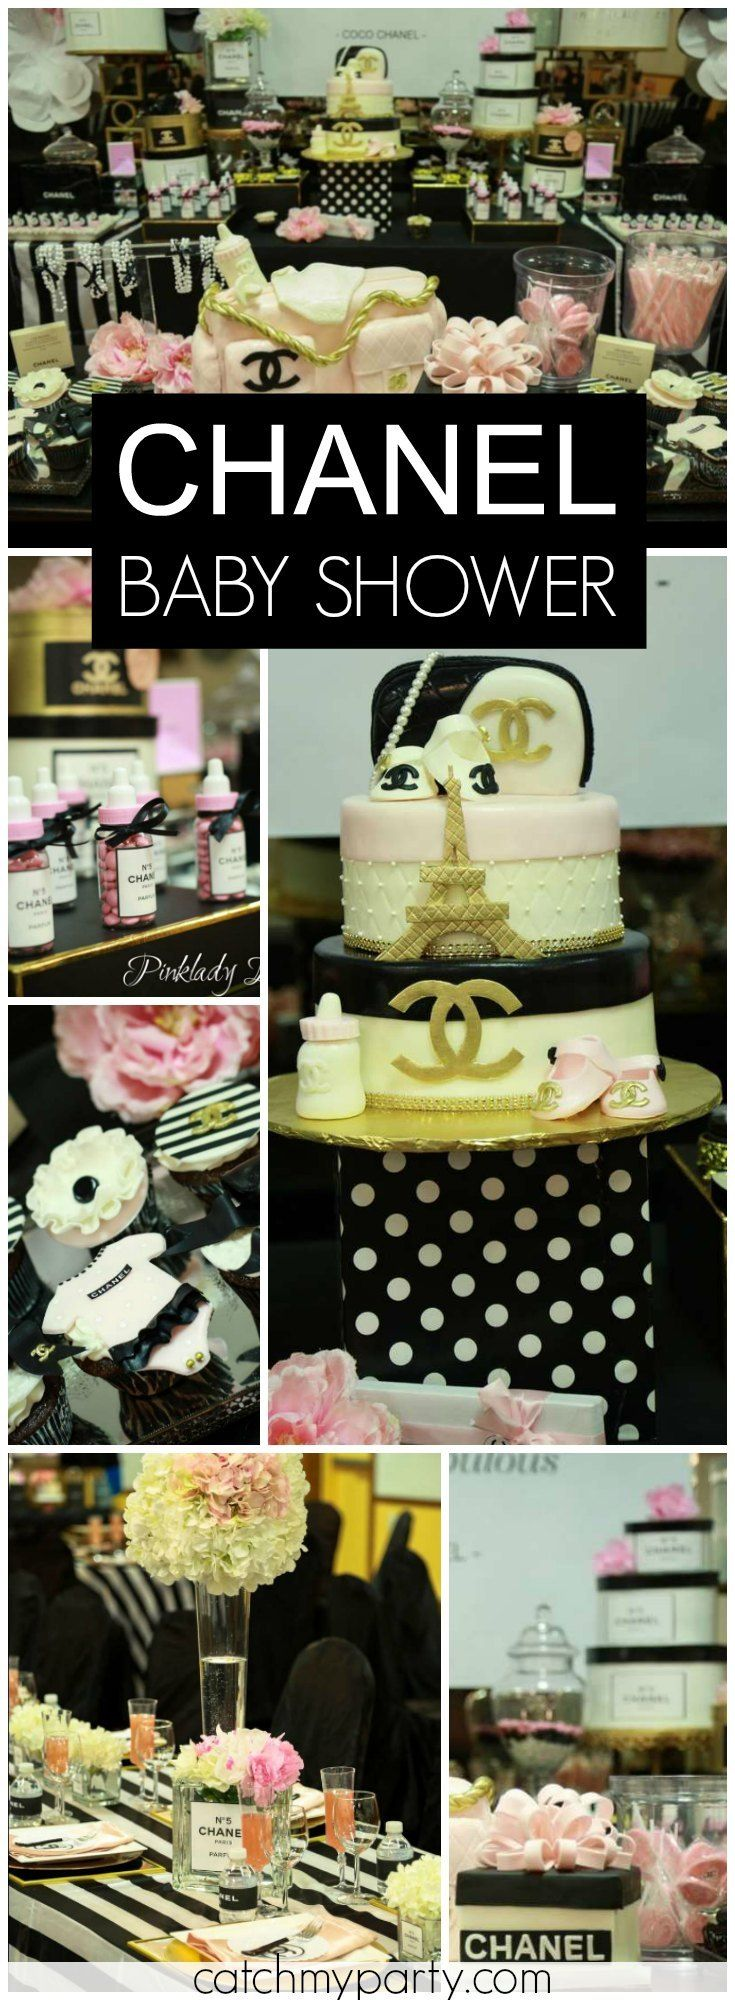 You have to see this glamorous Coco Chanel baby shower! See more party ideas at Catchmyparty.com!